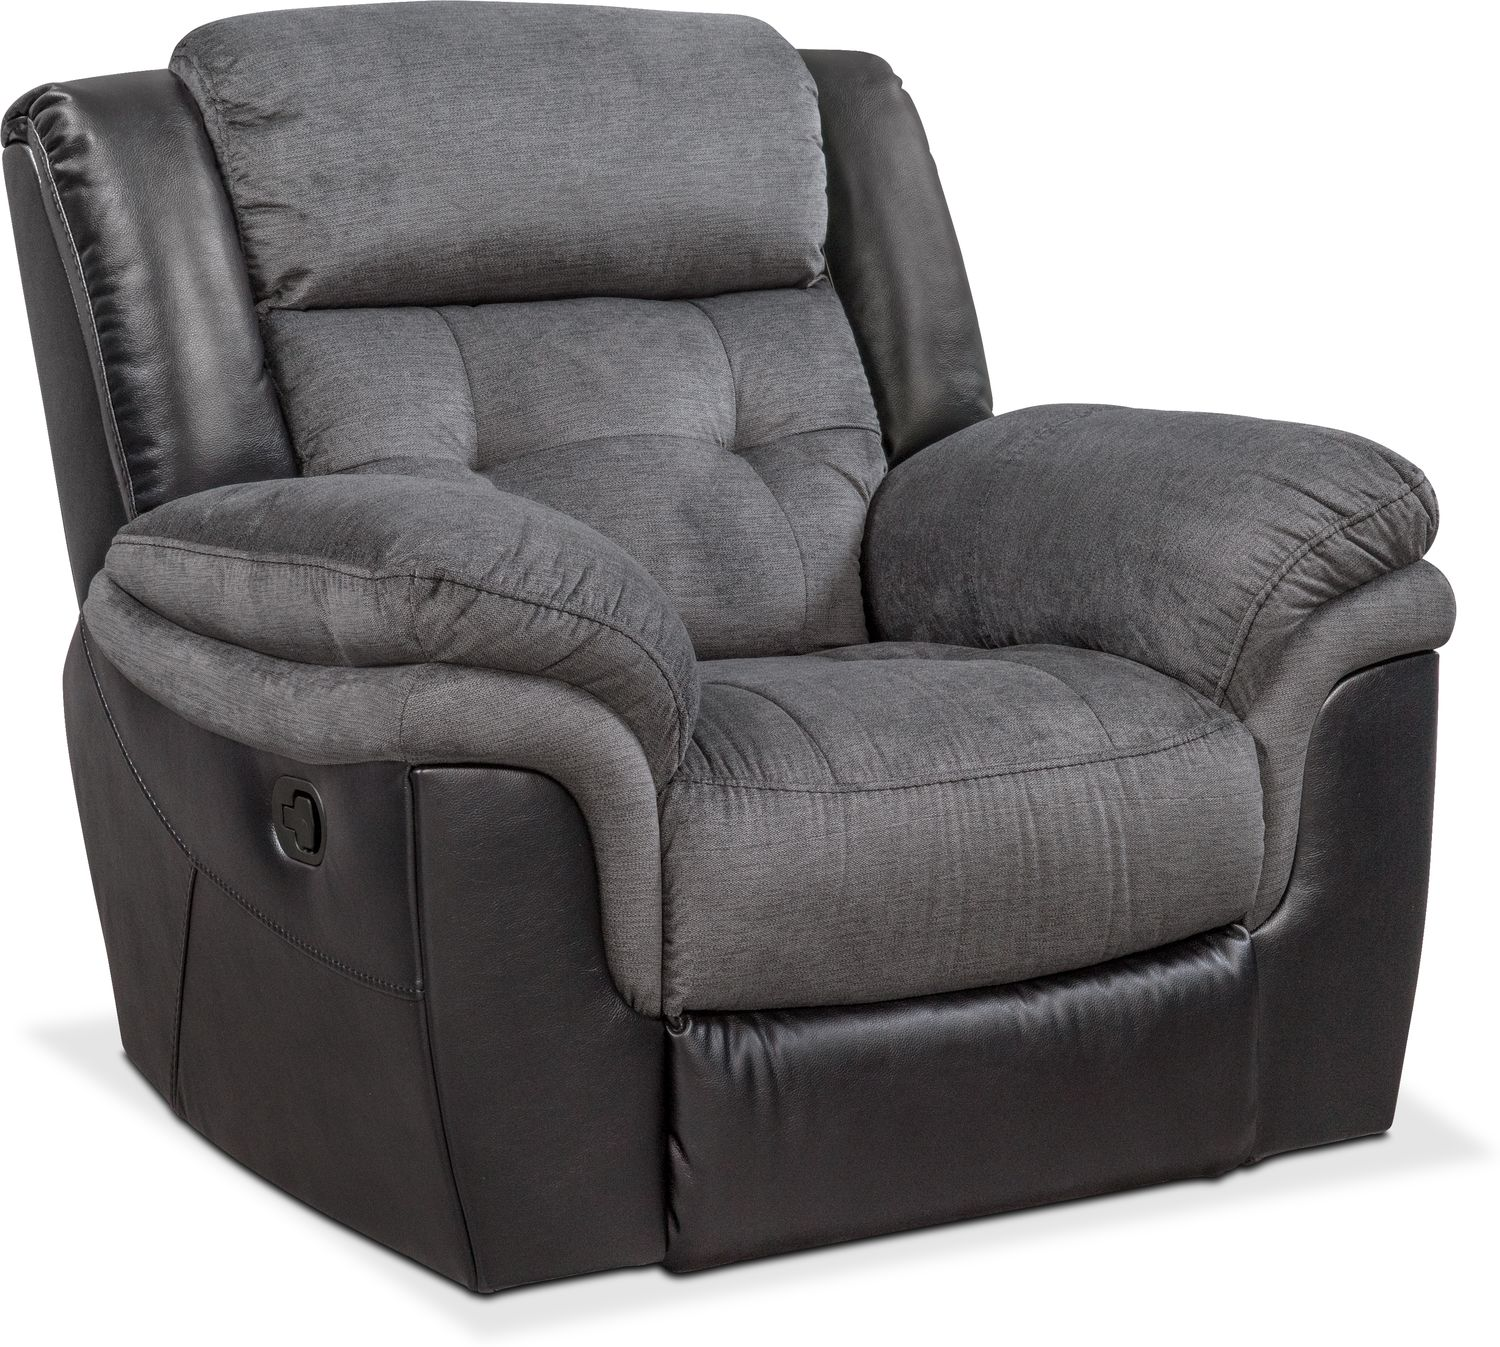 Gliding Chair Tacoma Glider Recliner